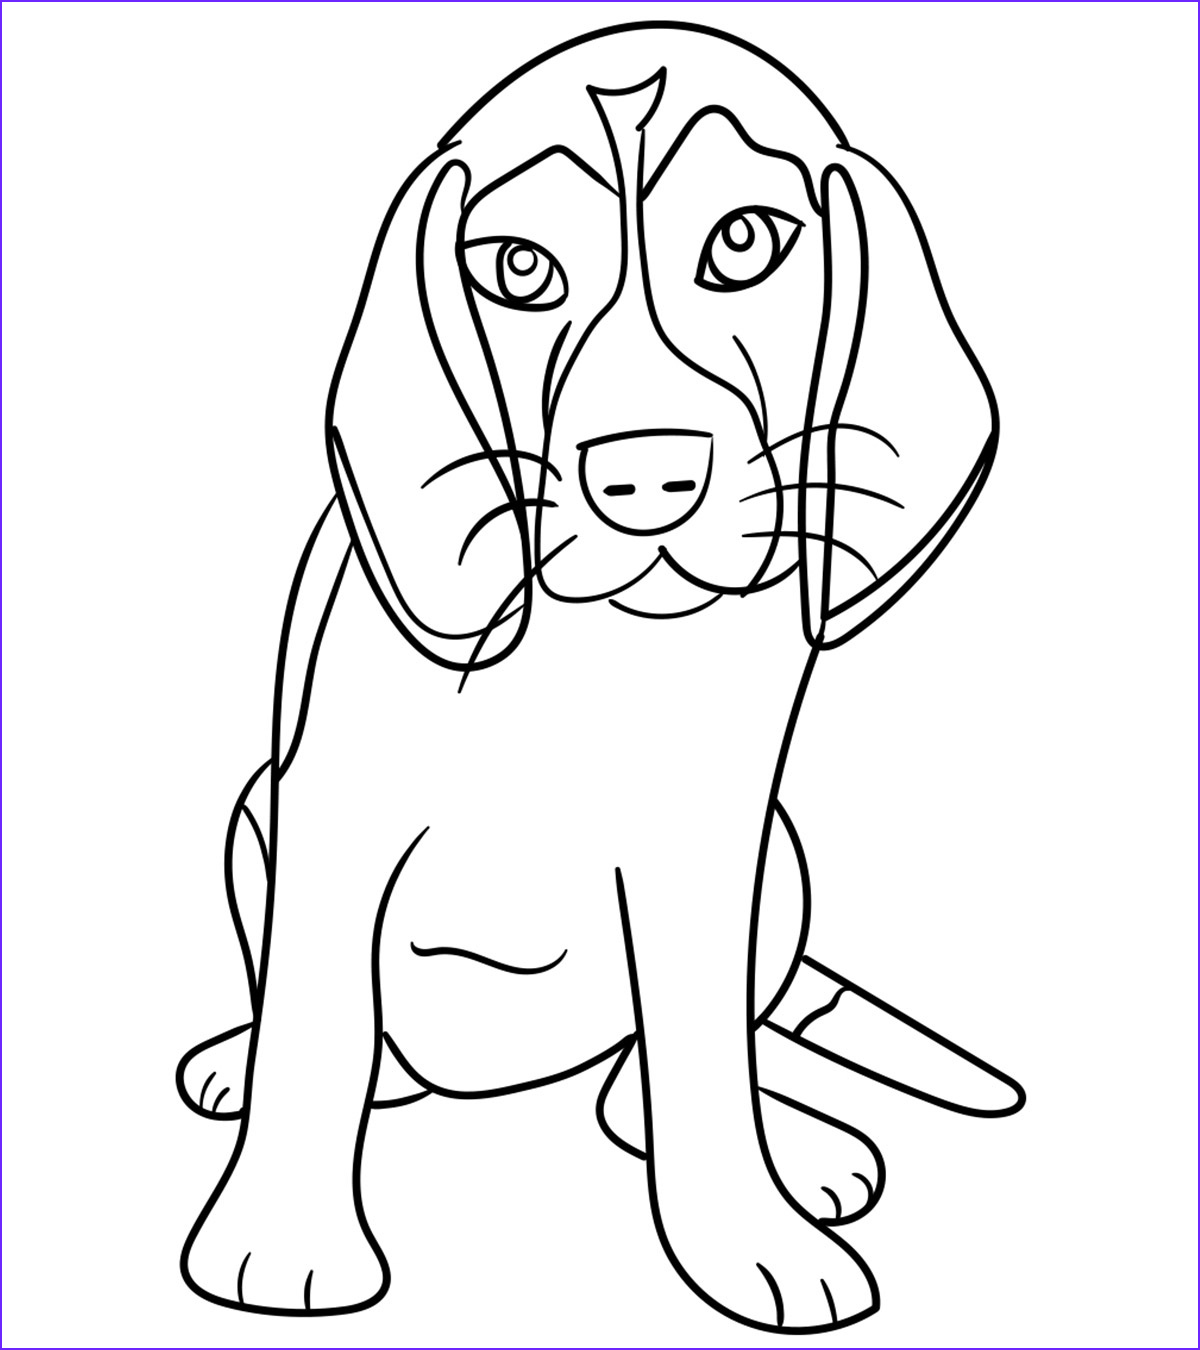 Puppy Coloring Book Best Of Stock Animal Coloring Pages Momjunction